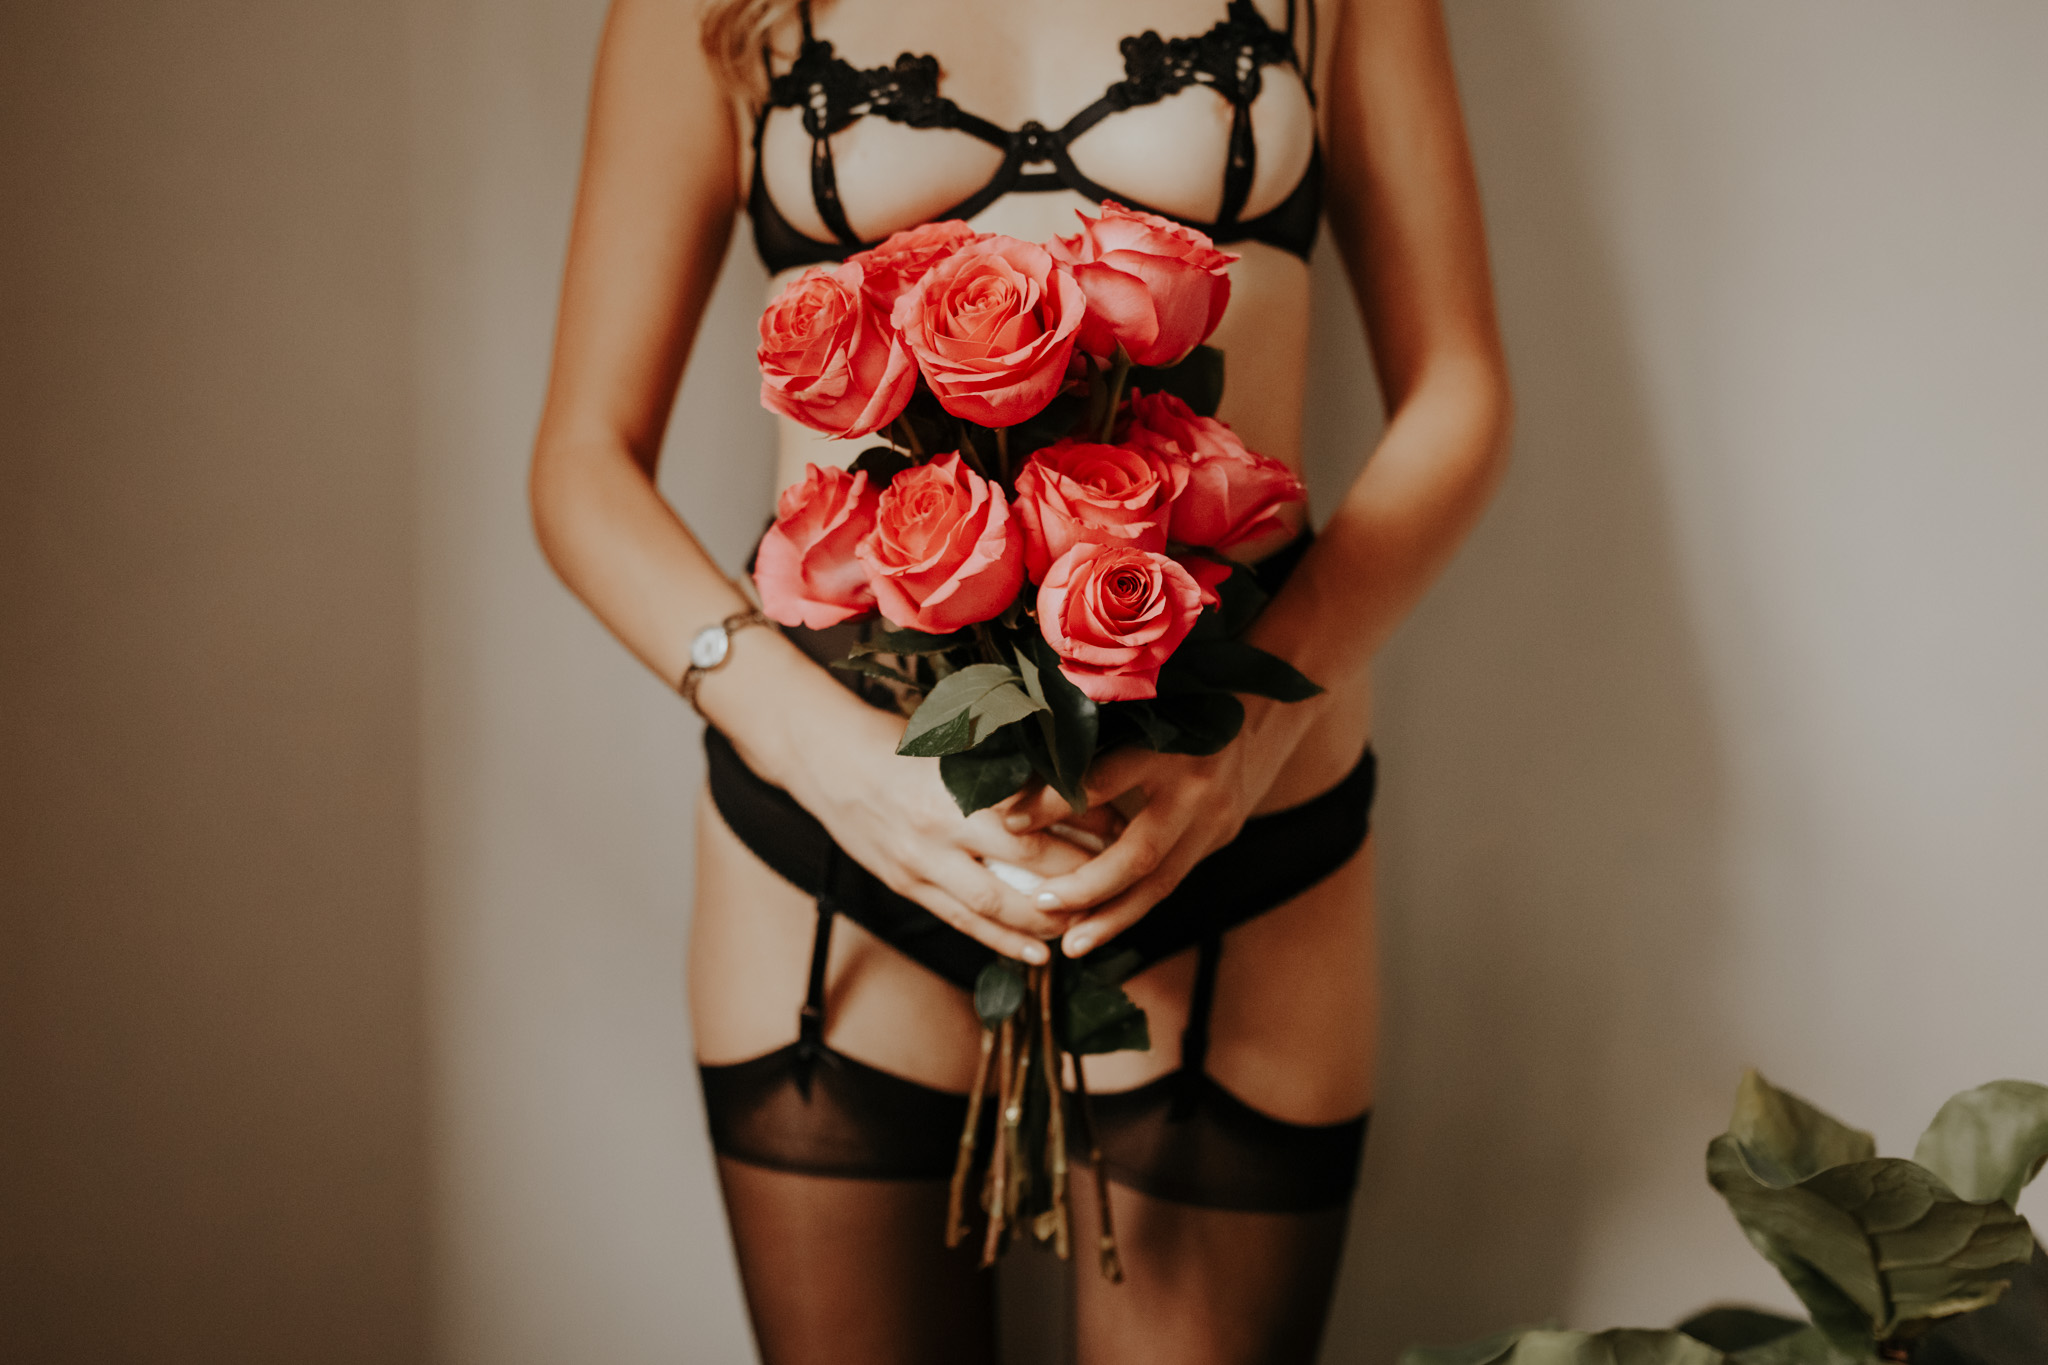 boudoir-photography-vancouver-bc-8.jpg